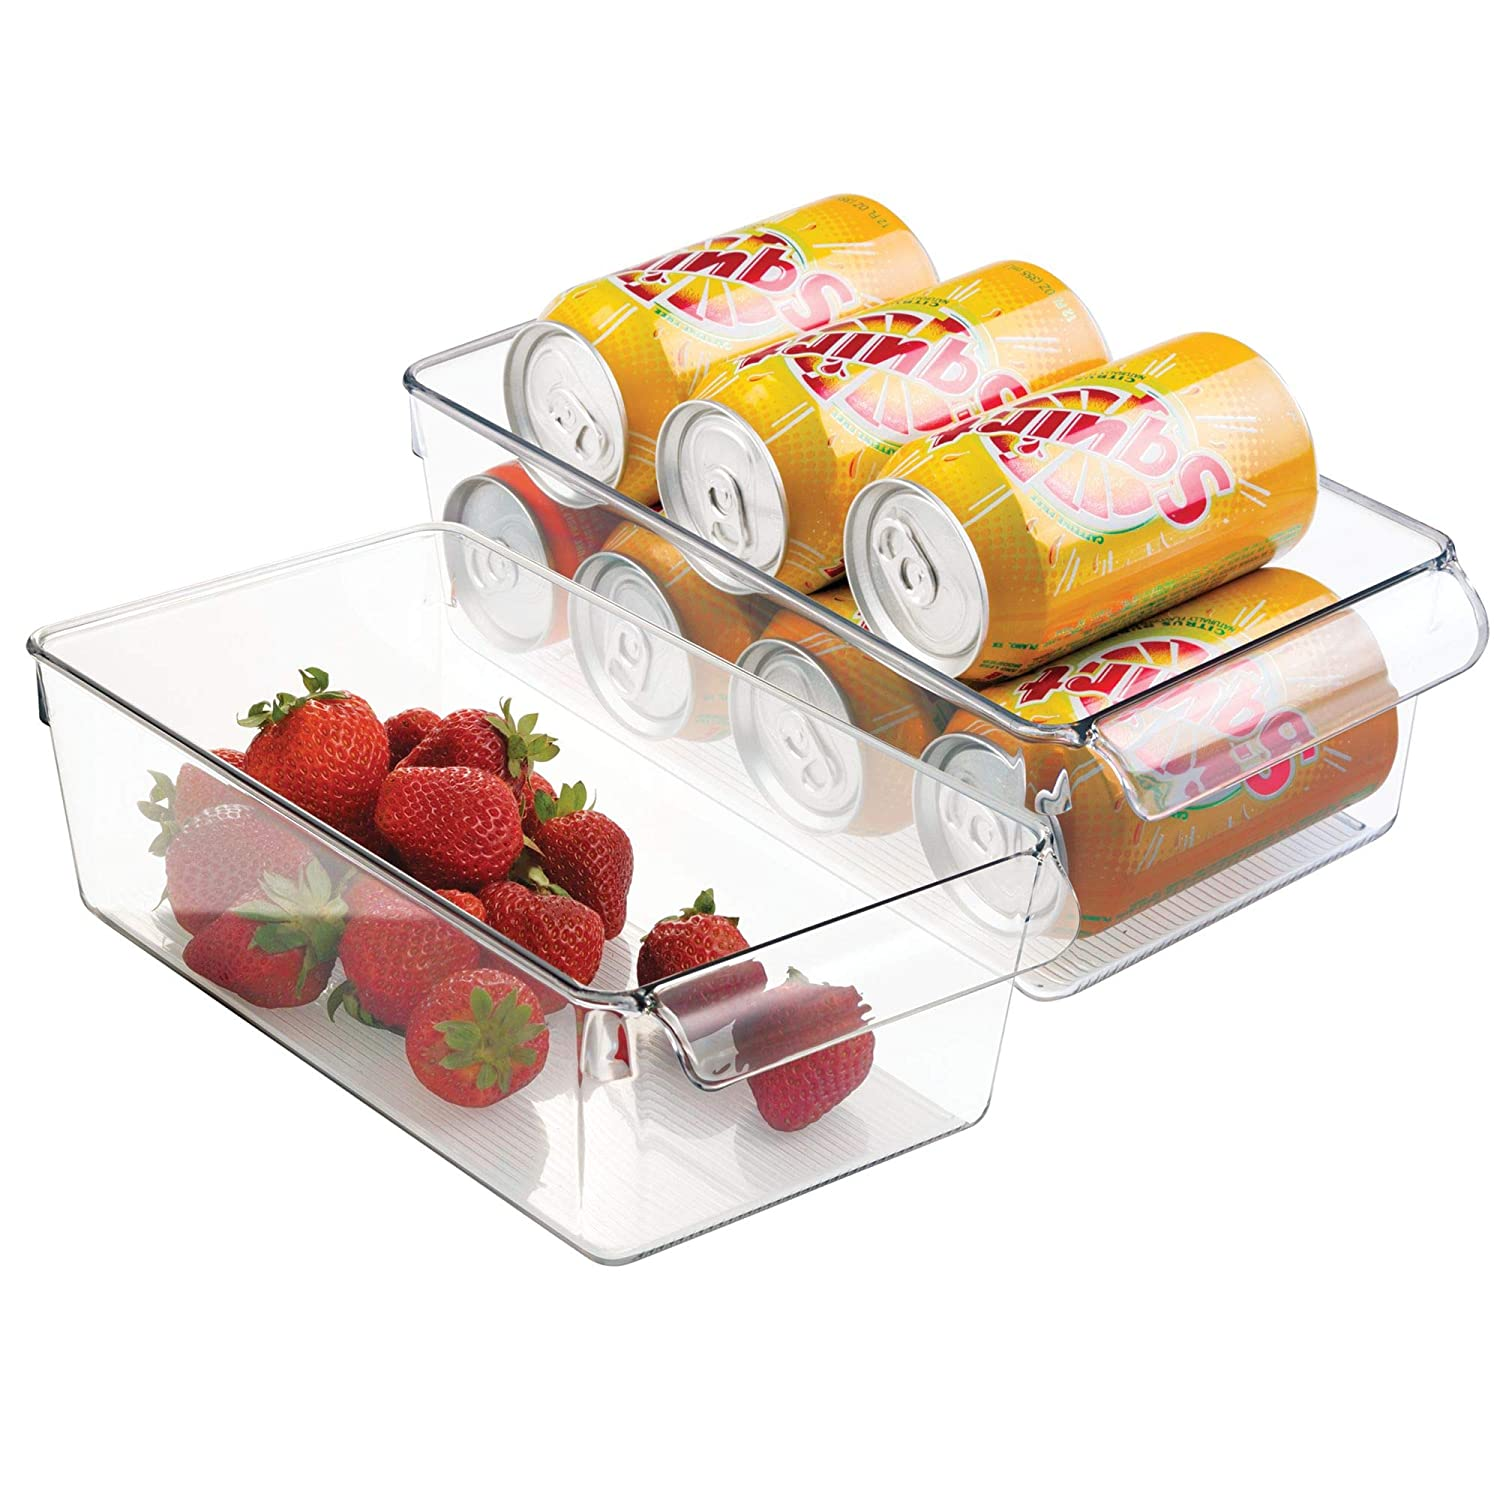 InterDesign 59430M2 Linus Pullz Kitchen Refrigerator or Pantry Bin with Front Pull Handle for Food Storage, Craft or Office Supplies - Clear, Set of 2